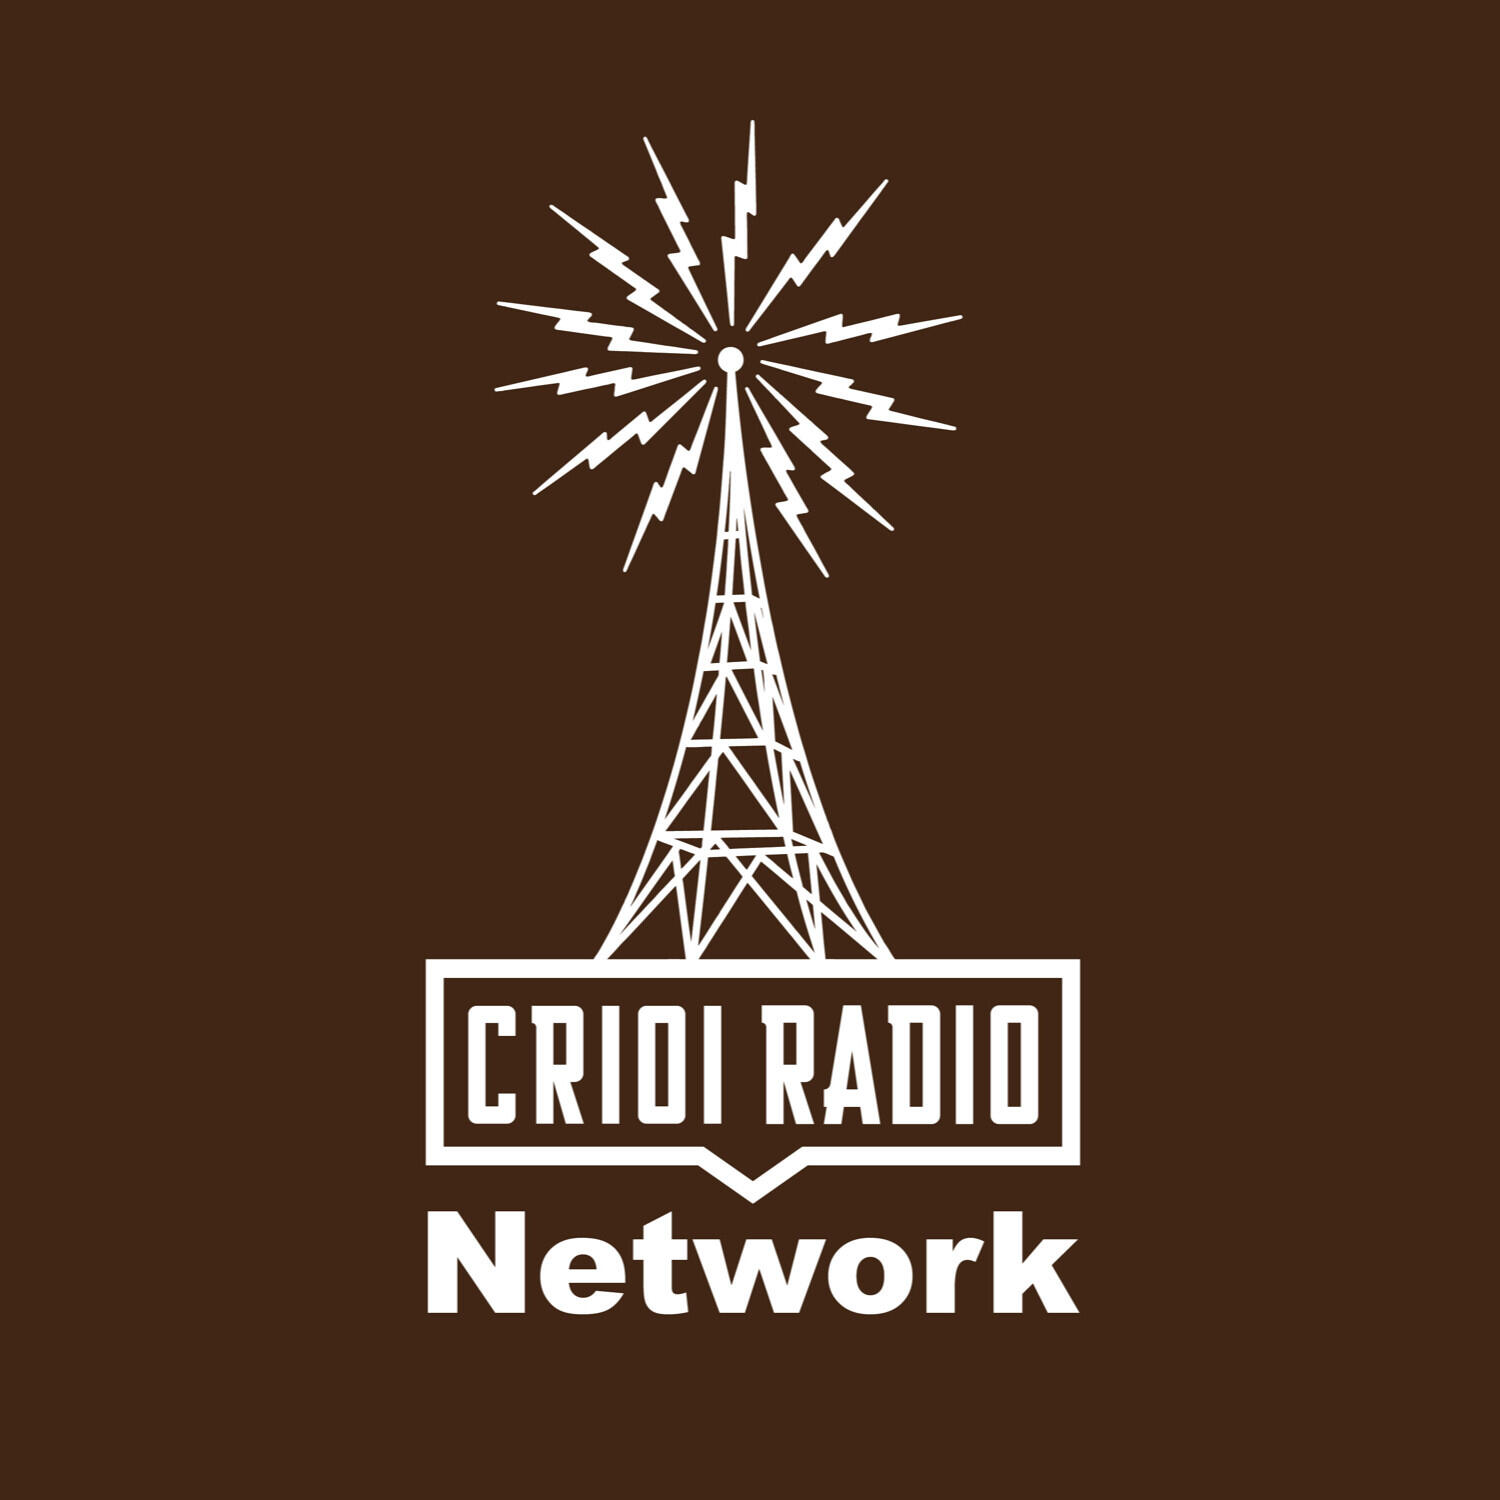 Cr101 Radio Network